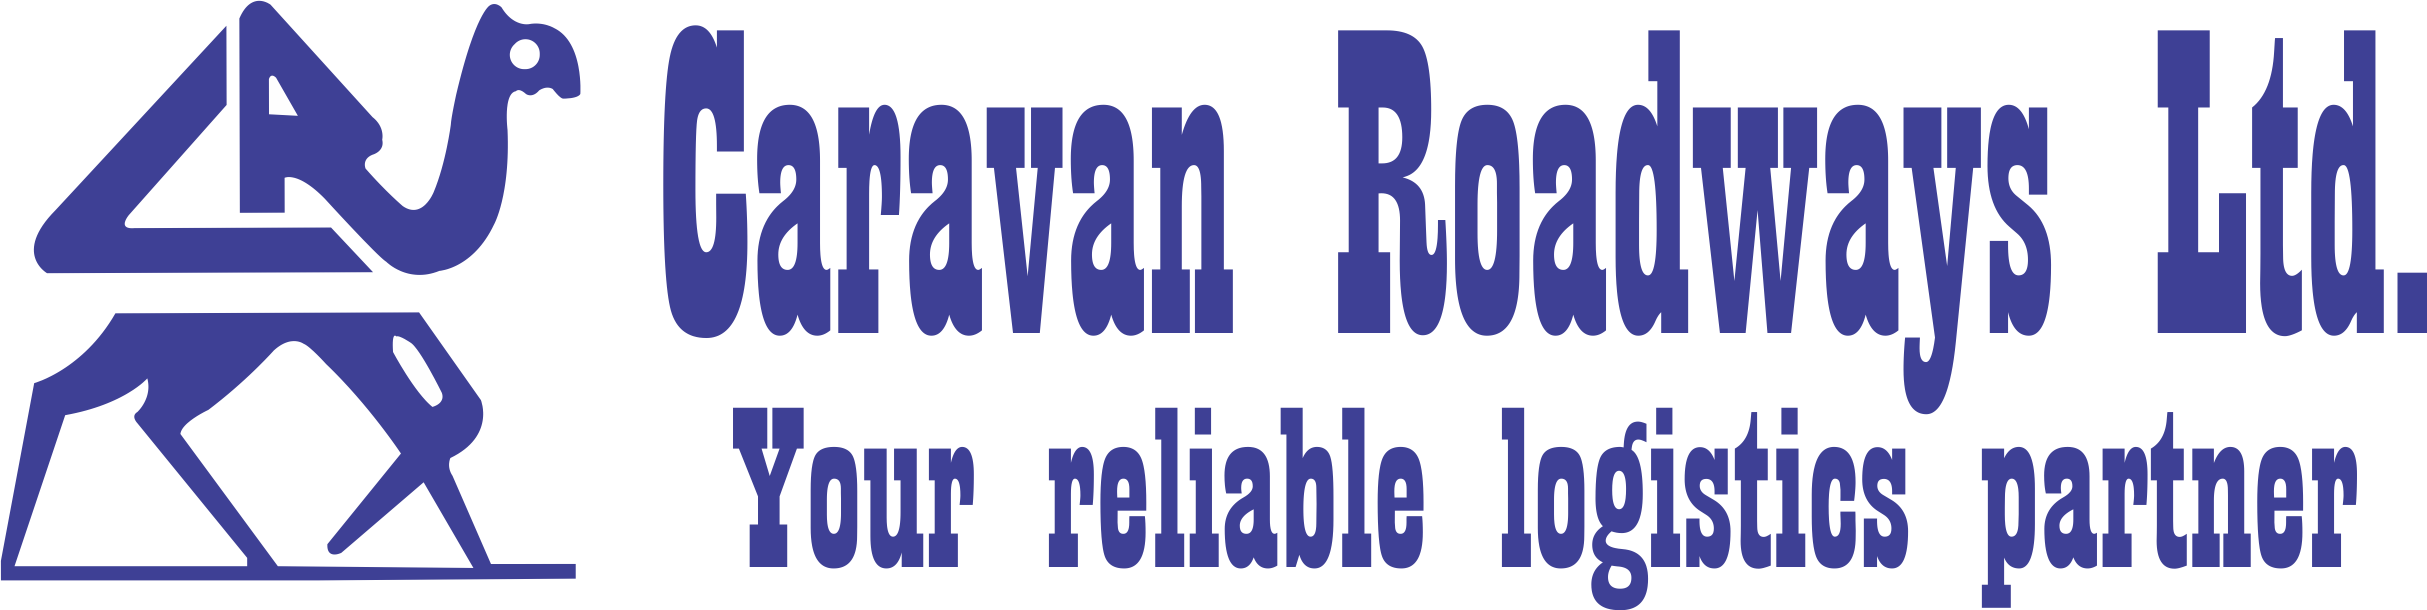 Caravan Roadways